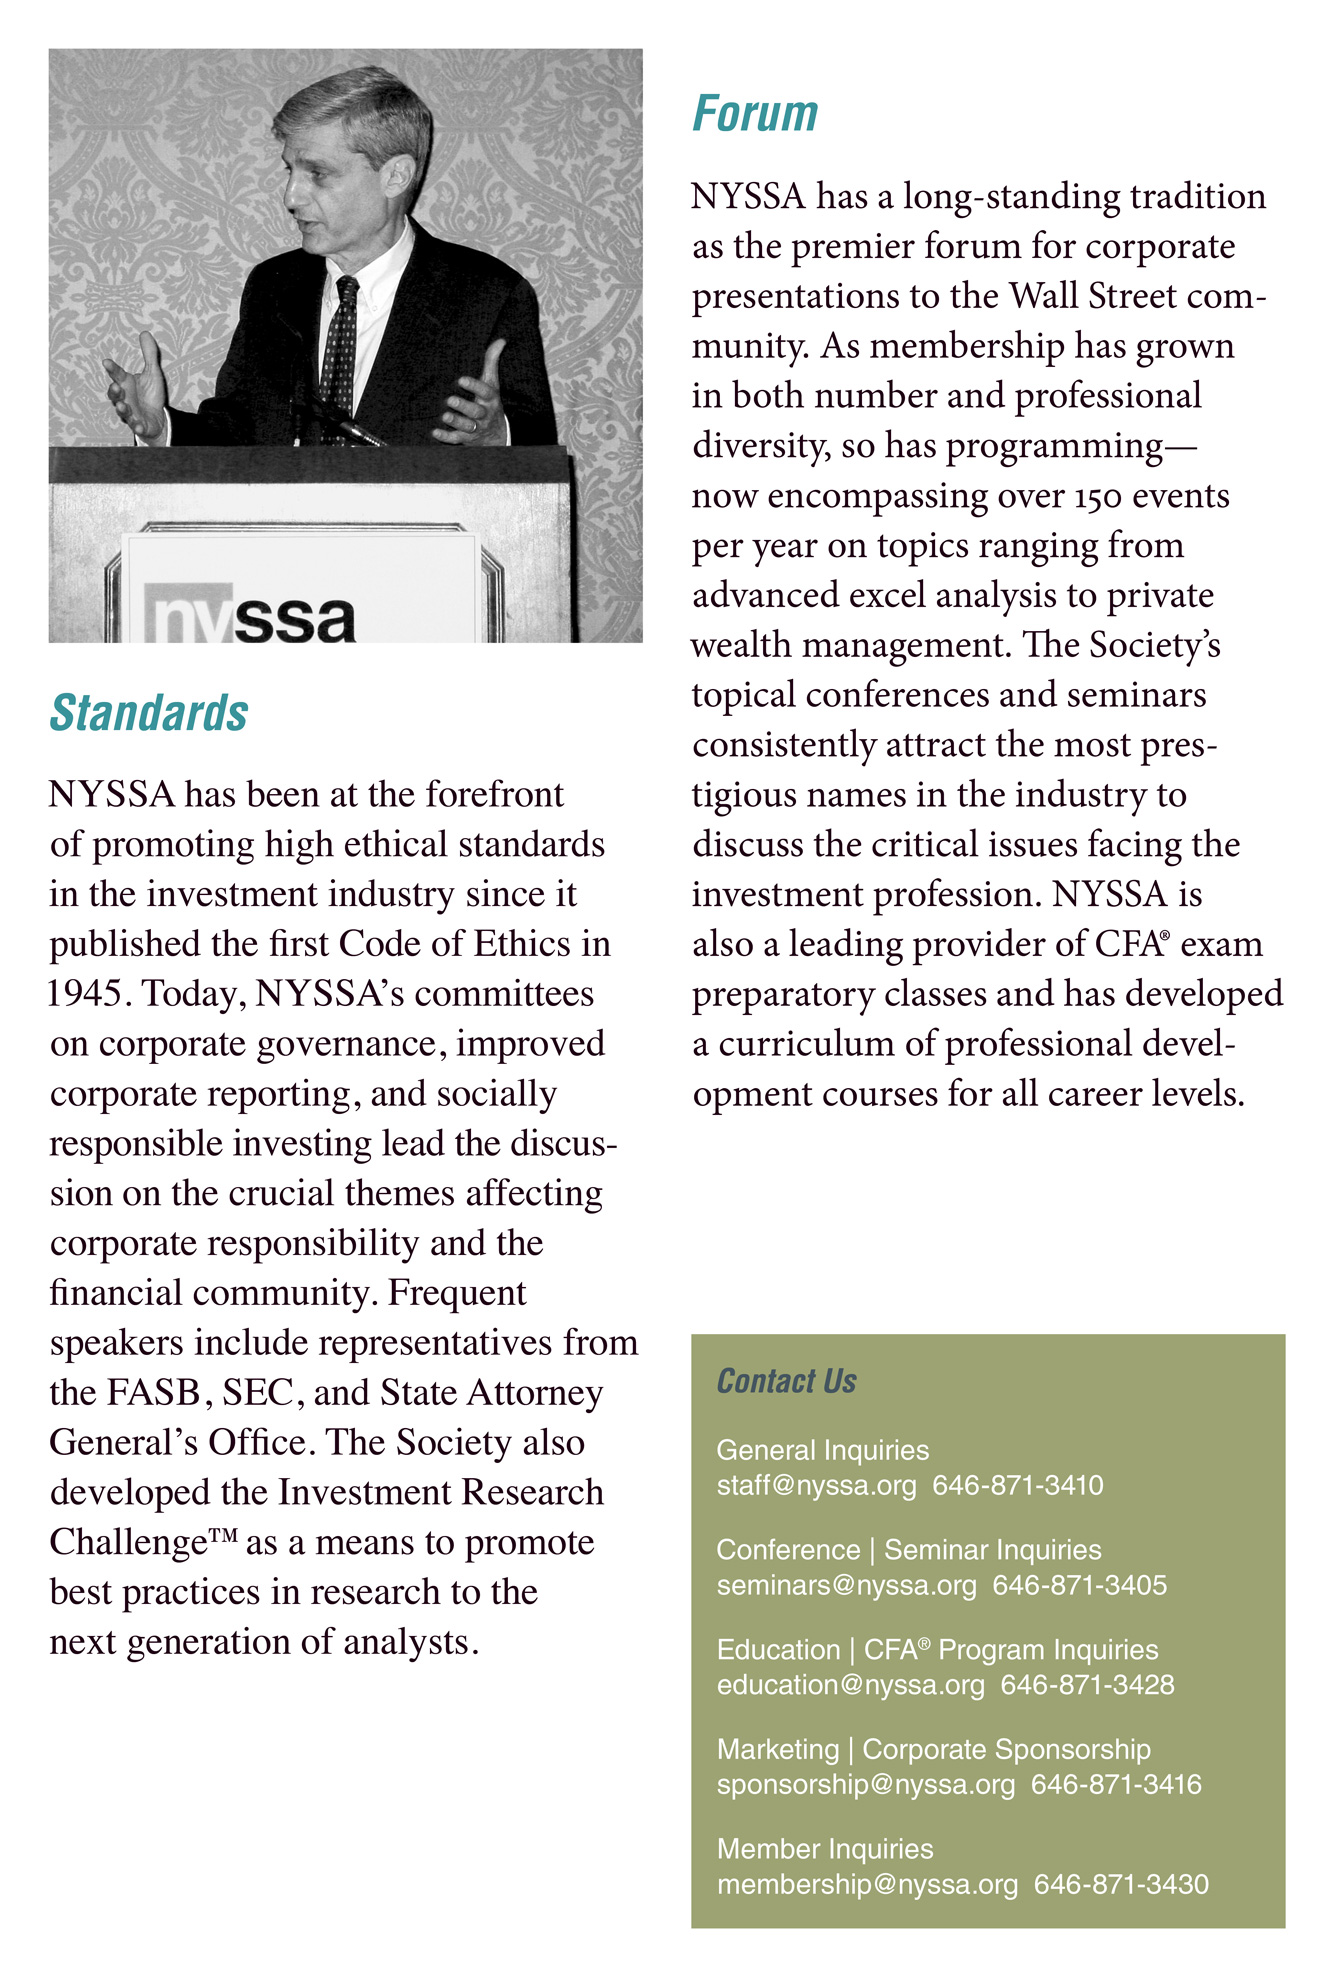 Brochure for The New York Society of Security Analysts (NYSSA).